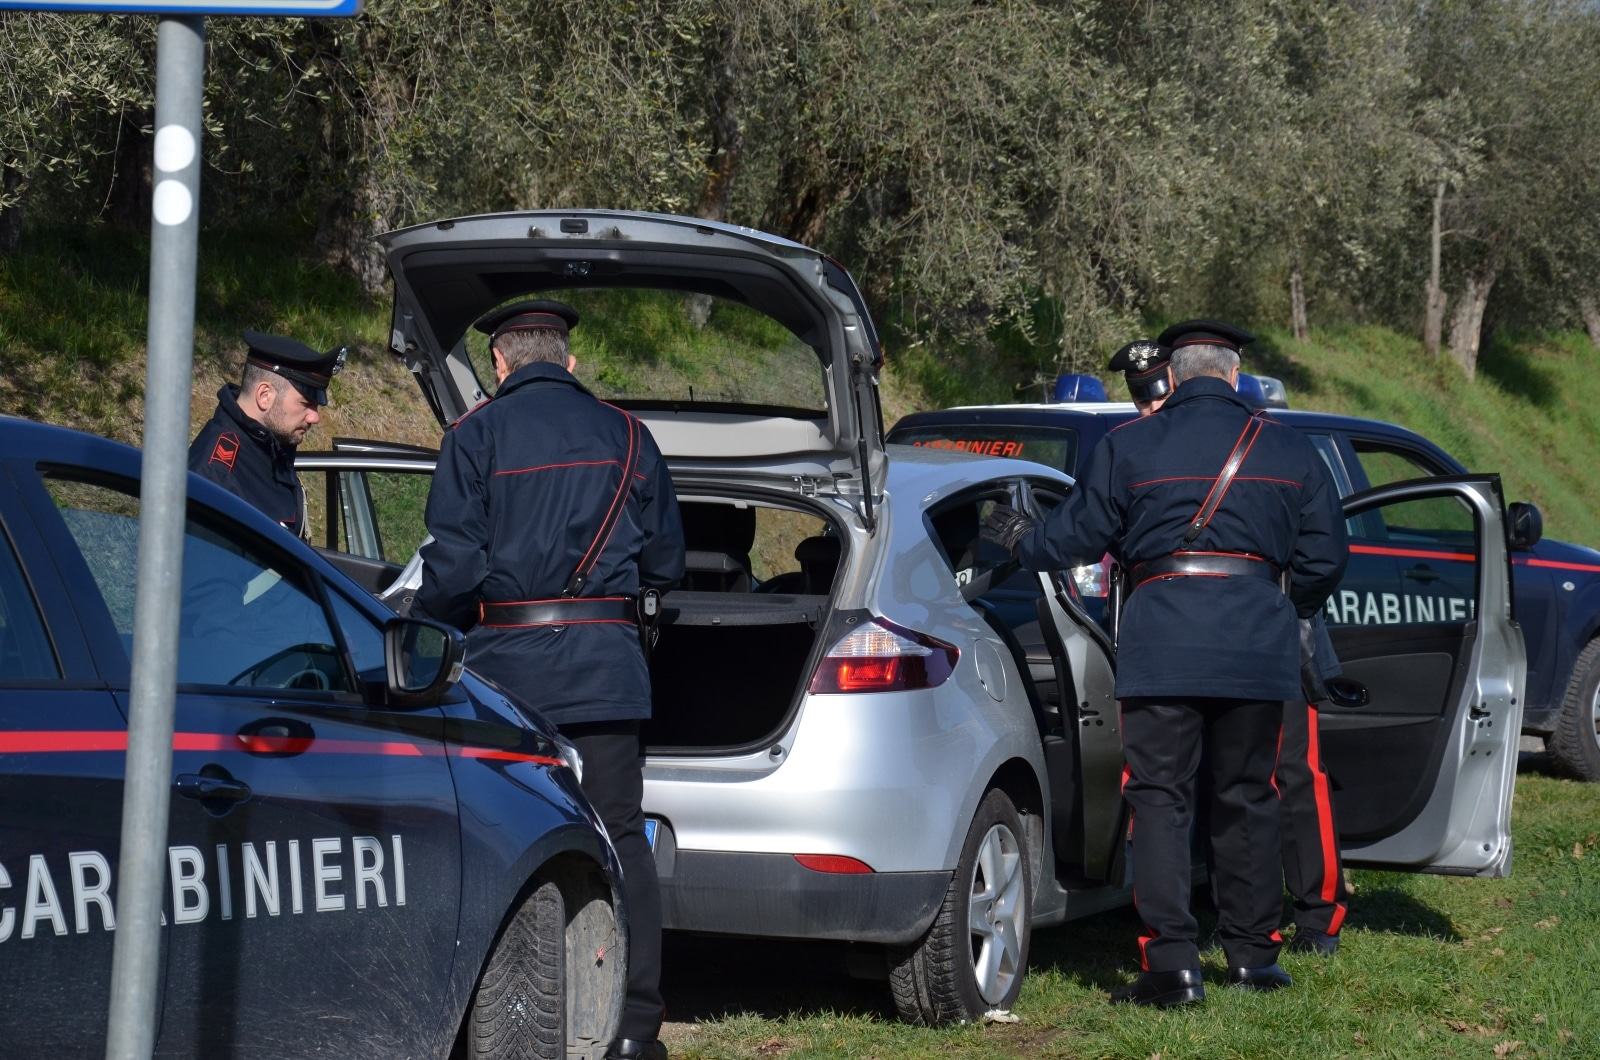 Photo of SIENA – Truffa a due anziani ultra 80enni, arrestati due nomadi